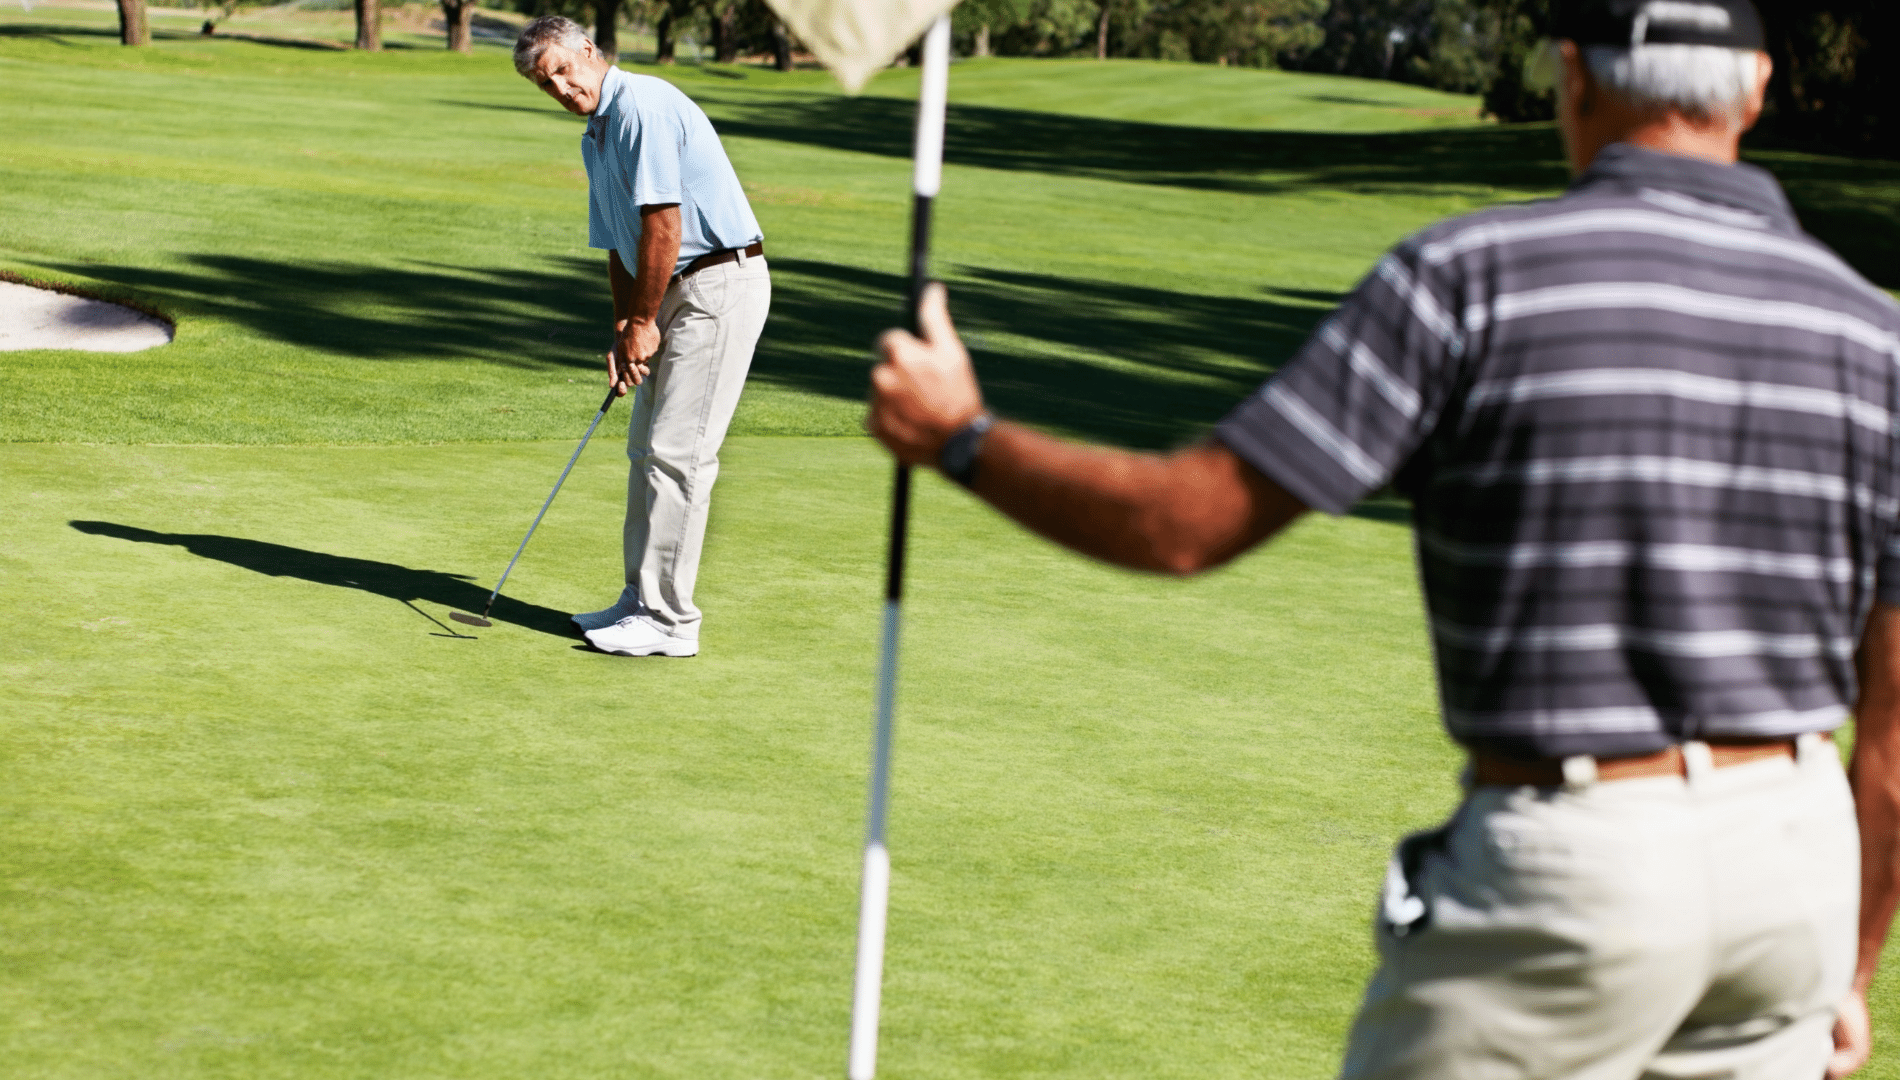 Rules Guy: Can You Refuse A Conceded Putt In Order To Show Your Partner The Break?